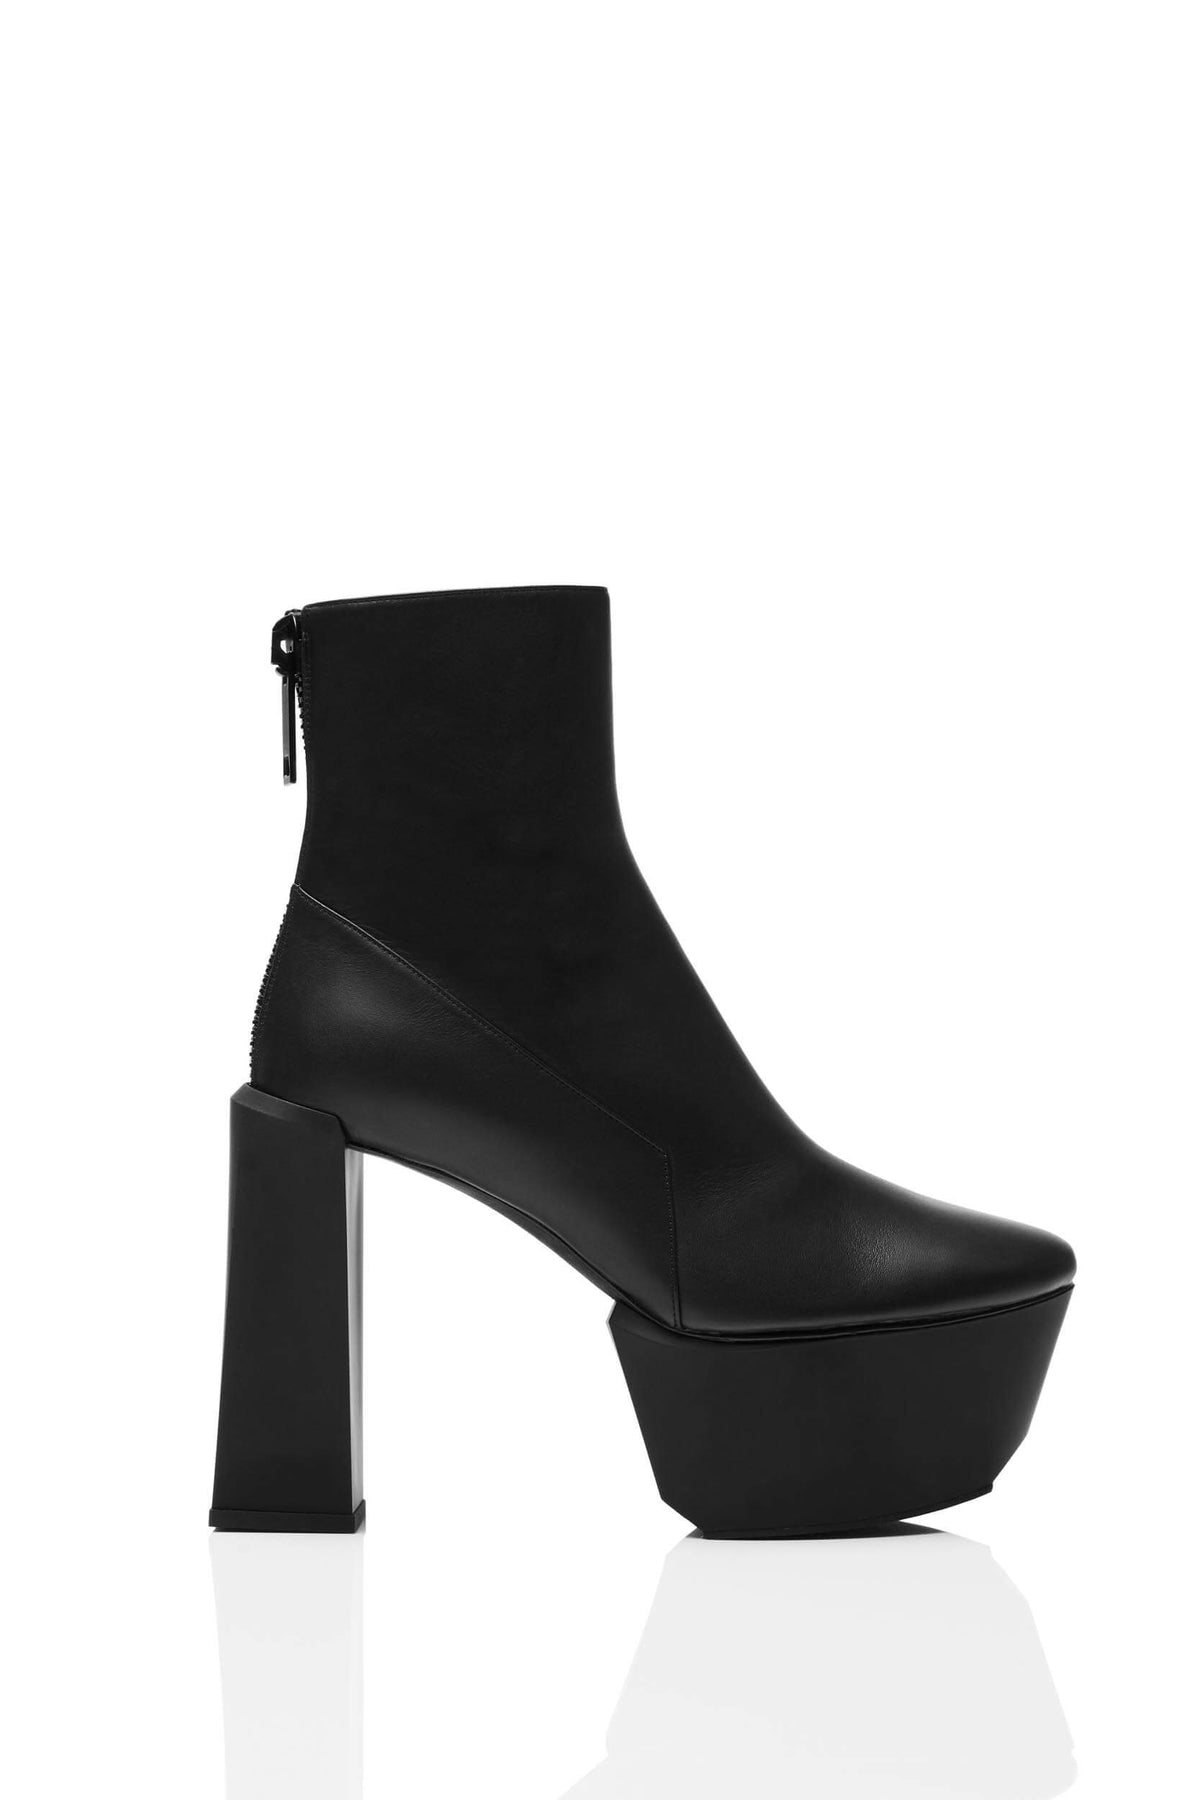 HAIKI 651 – Back zip platform boot with softly rounded toe. Finished in calf nappa in black.